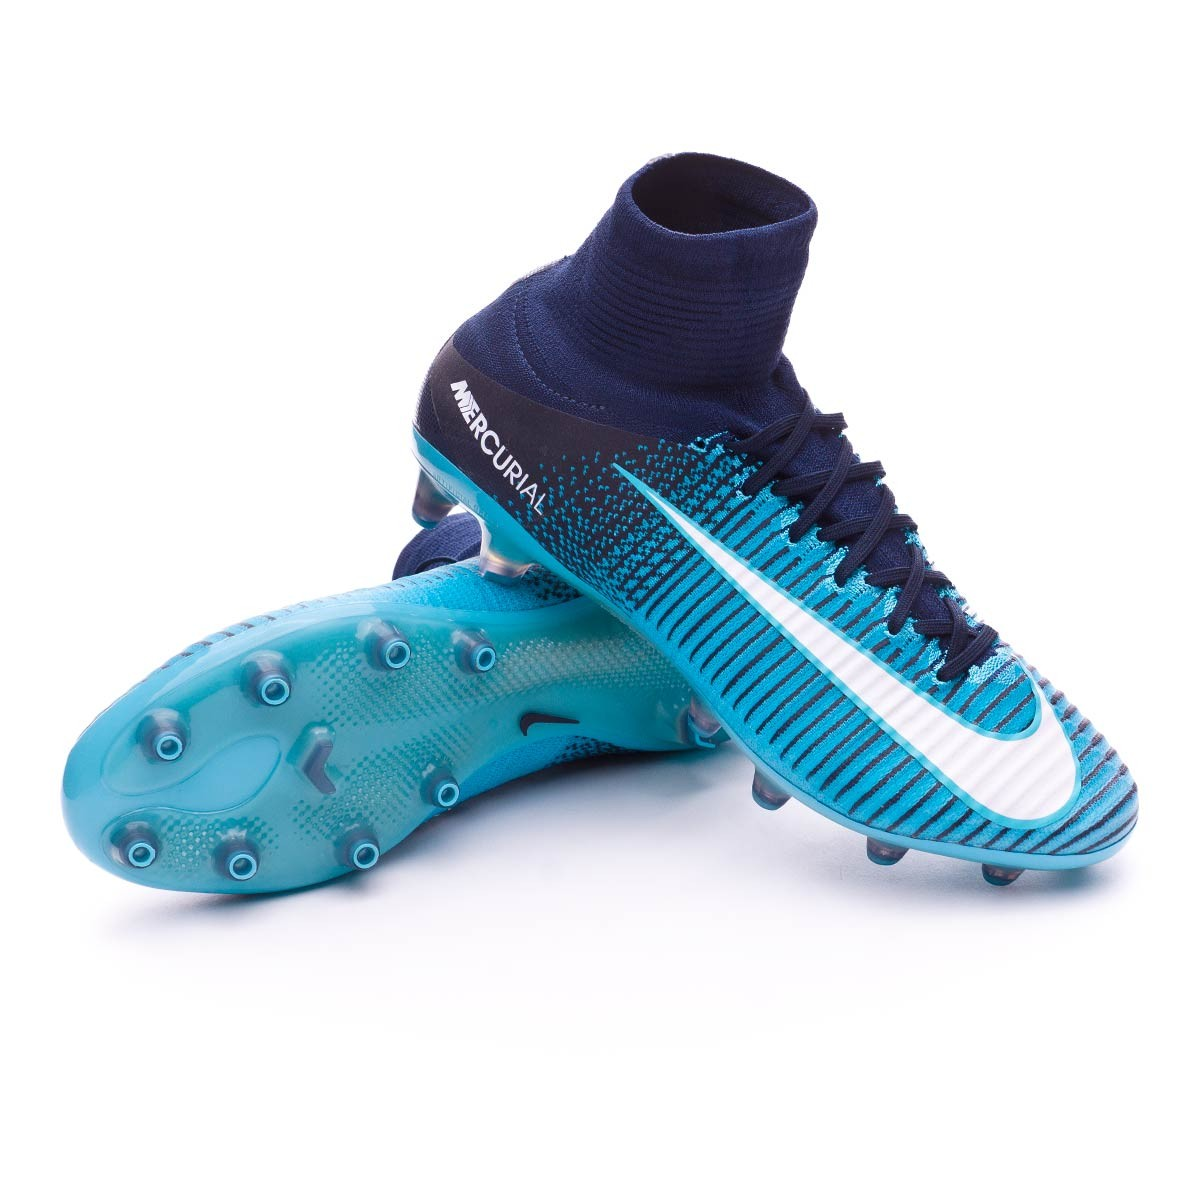 026d33ded Nike Mercurial Superfly V ACC AG-Pro Football Boots. Obsidian-White-Gamma  blue-Glacier ...